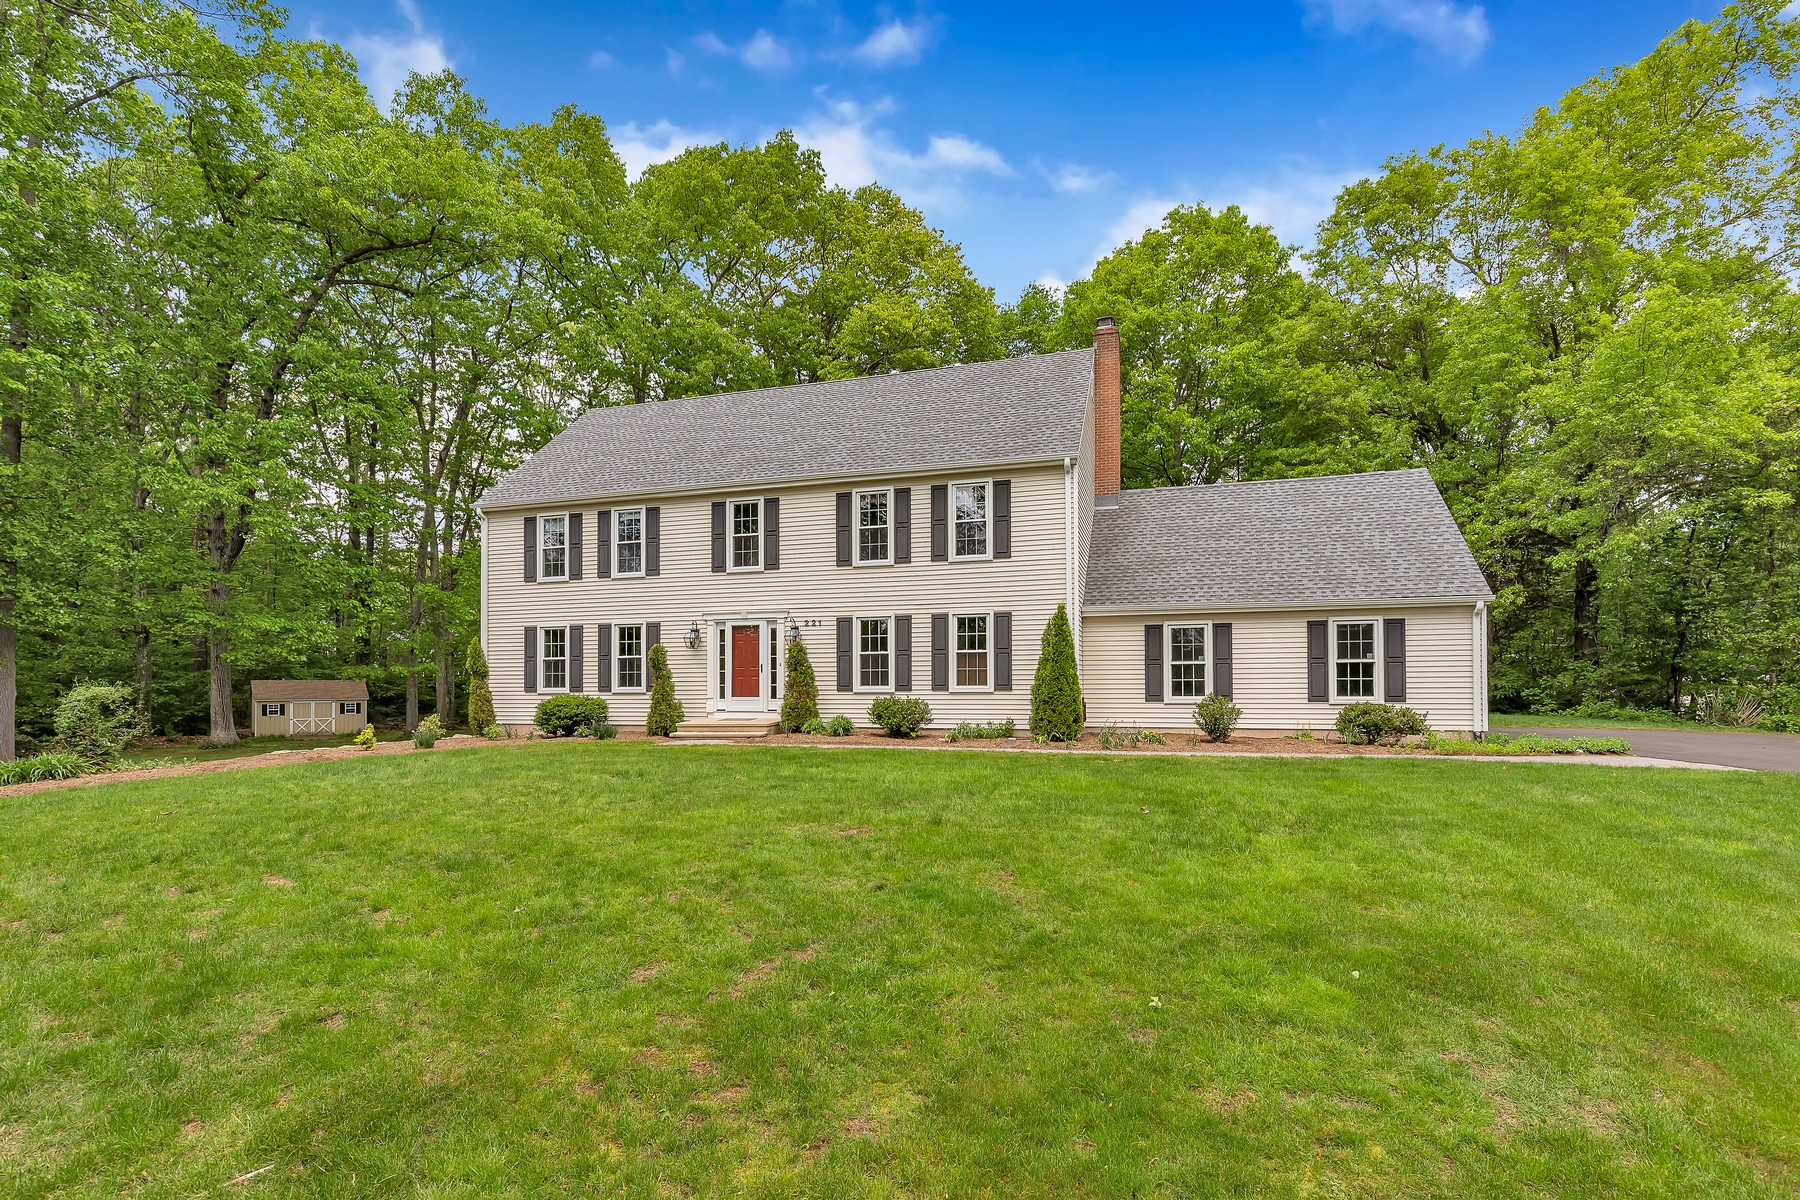 single family homes for Sale at Impeccable Colonial on a Private Lane 221 Wiese Rd, Cheshire, Connecticut 06410 United States